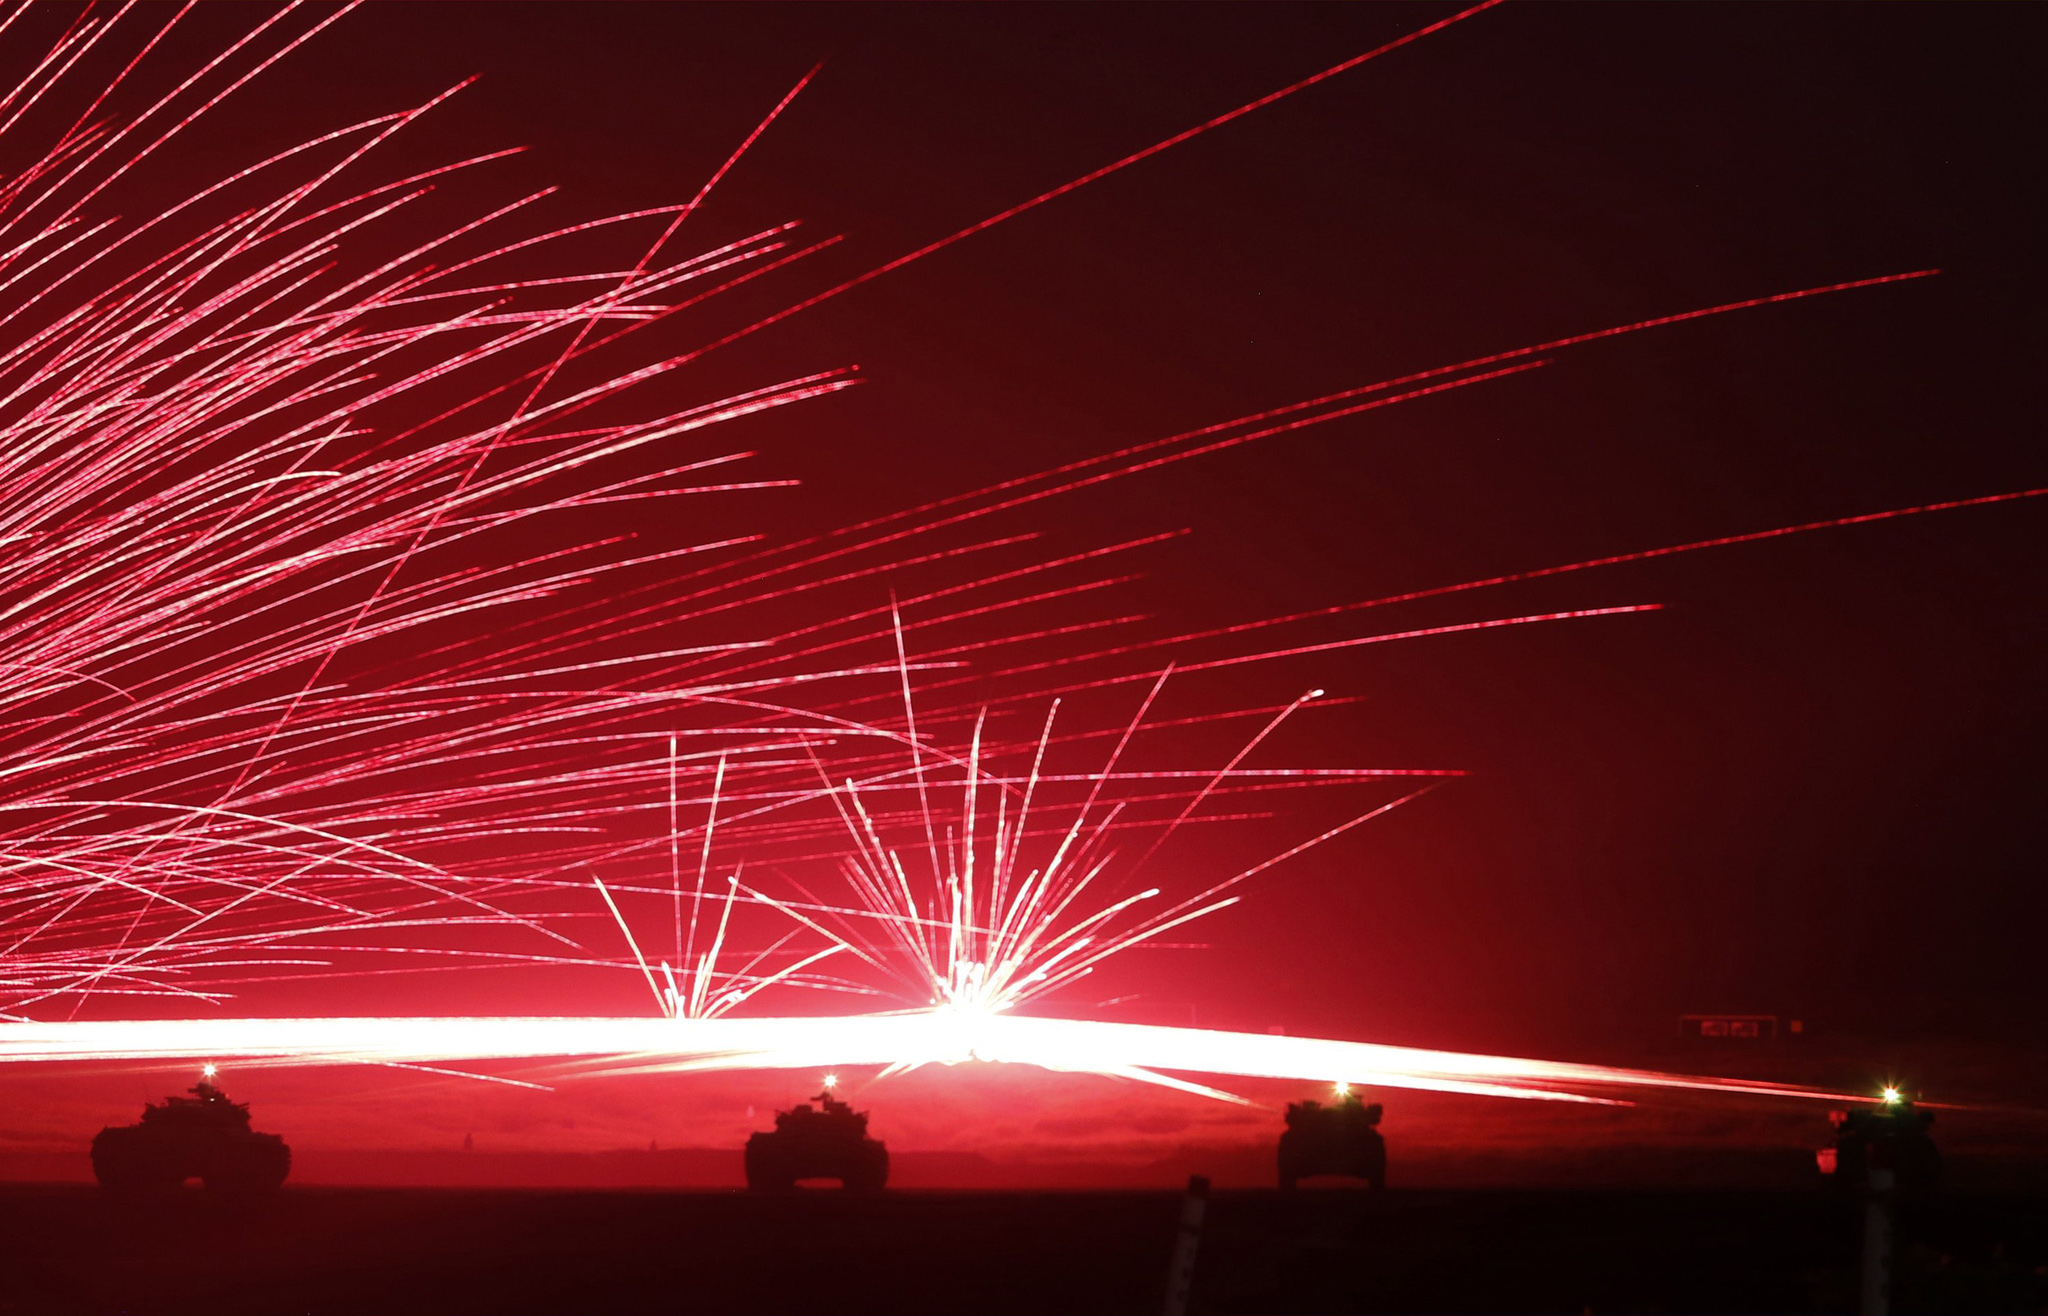 "REUTERS PICTURE HIGHLIGHT...ATTENTION EDITORS - REUTERS PICTURE HIGHLIGHT TRANSMITTED BY 1255 GMT ON AUGUST 19, 2014    GOT314  Tracer bullets ricochet off their targets as Japanese Ground Self-Defence Force tanks fire their machine guns during a night session of an annual training exercise at Higashifuji training field near Mount Fuji in Gotemba, west of Tokyo, August 19, 2014. REUTERS/Yuya Shino      REUTERS NEWS PICTURES HAS NOW MADE IT EASIER TO FIND THE BEST PHOTOS FROM THE MOST IMPORTANT STORIES AND TOP STANDALONES EACH DAY. Search for ""TPX"" in the IPTC Supplemental Category field or ""IMAGES OF THE DAY"" in the Caption field and you will find a selection of 80-100 of our daily Top Pictures."